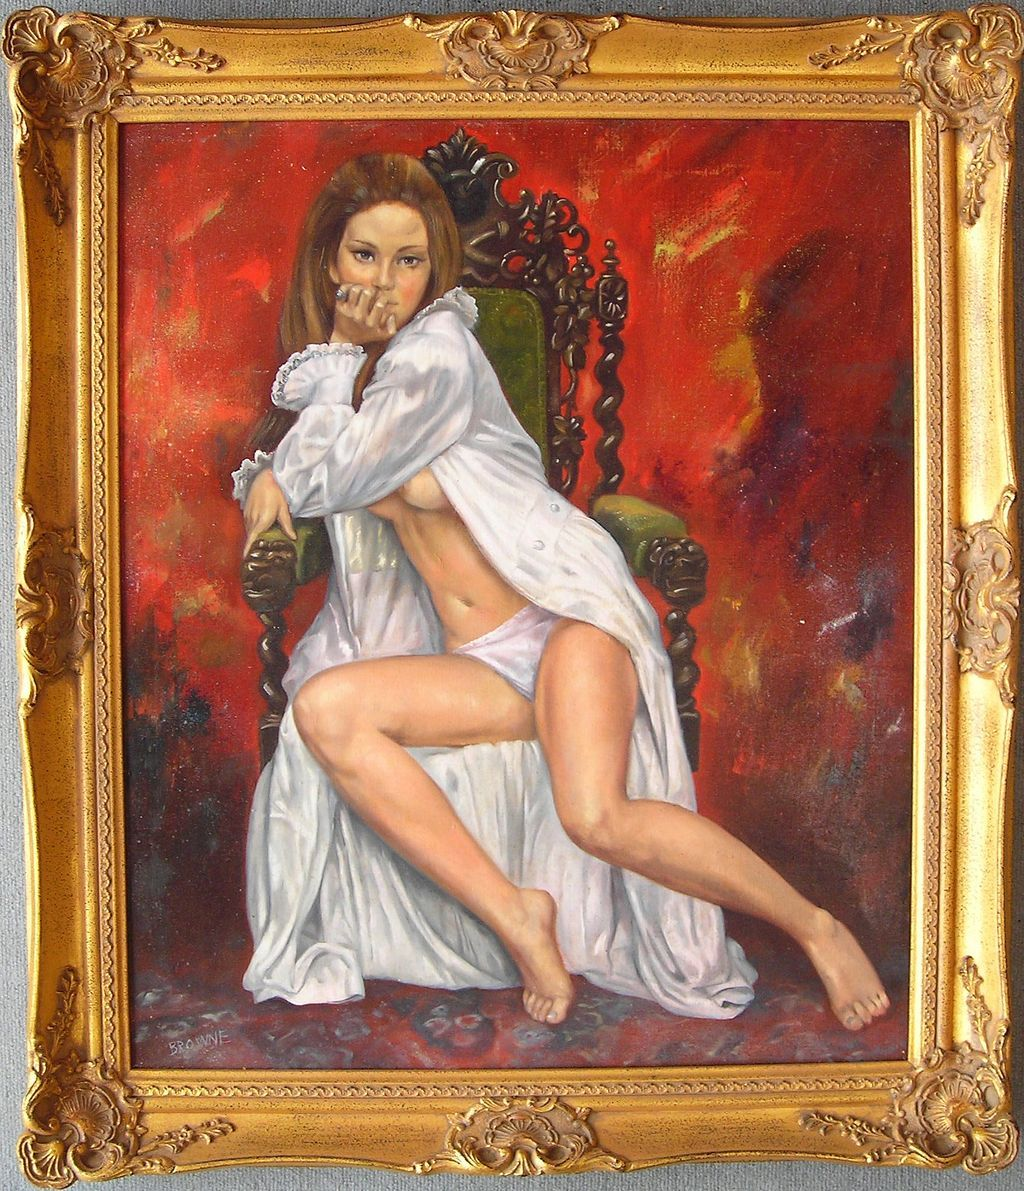 Semi Nude Woman - Original Oil Painting by Bob Browne